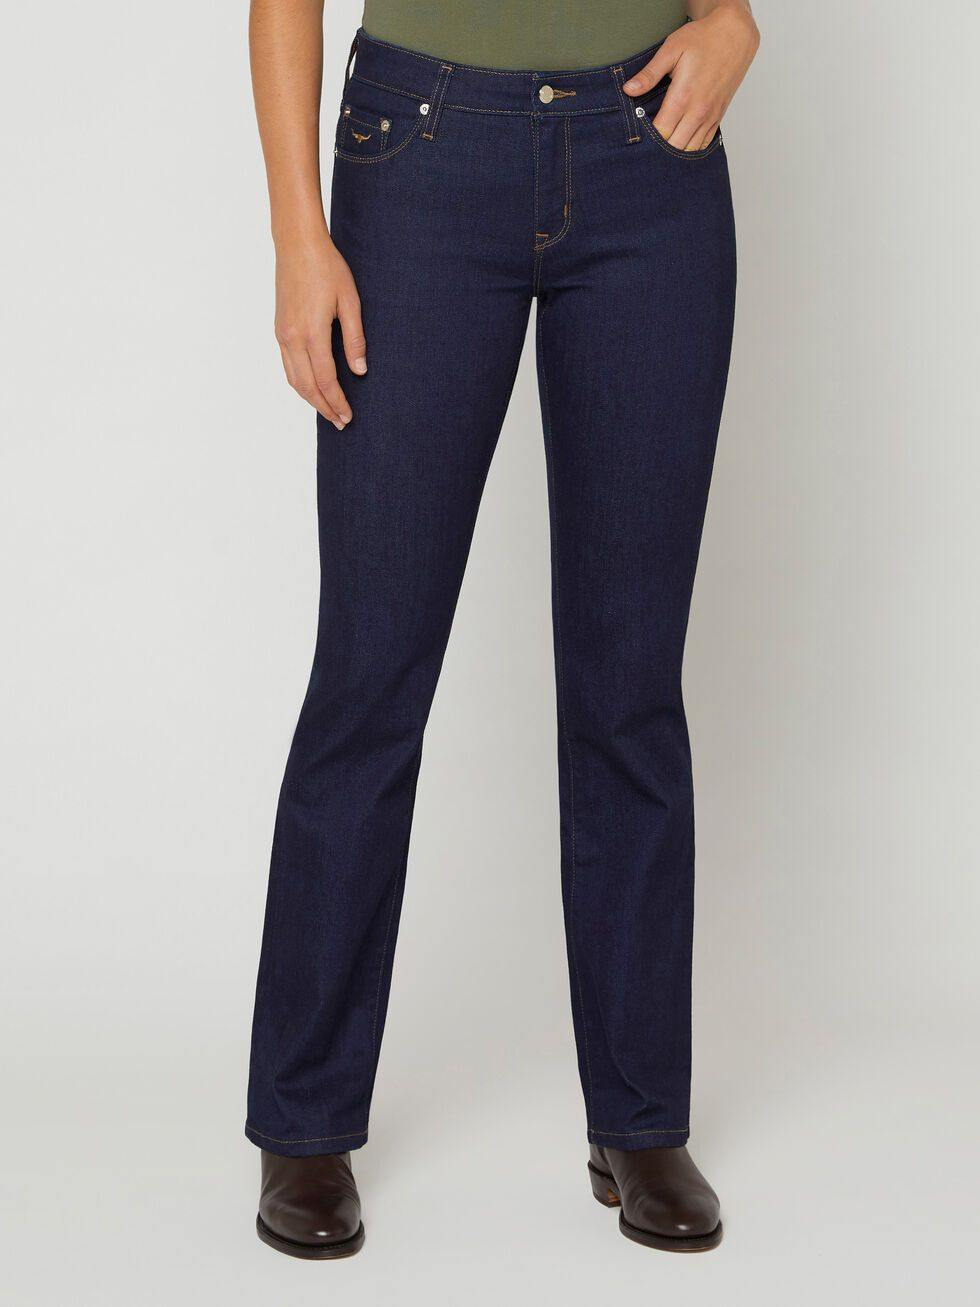 RM Williams Jean Tara The Tara Jean is a traditional slim-fit that slightly flares from the calf to the hem. Popular on the land, the Tara can also be styled with a clean, button down shirt. Available at My Harley and Rose.